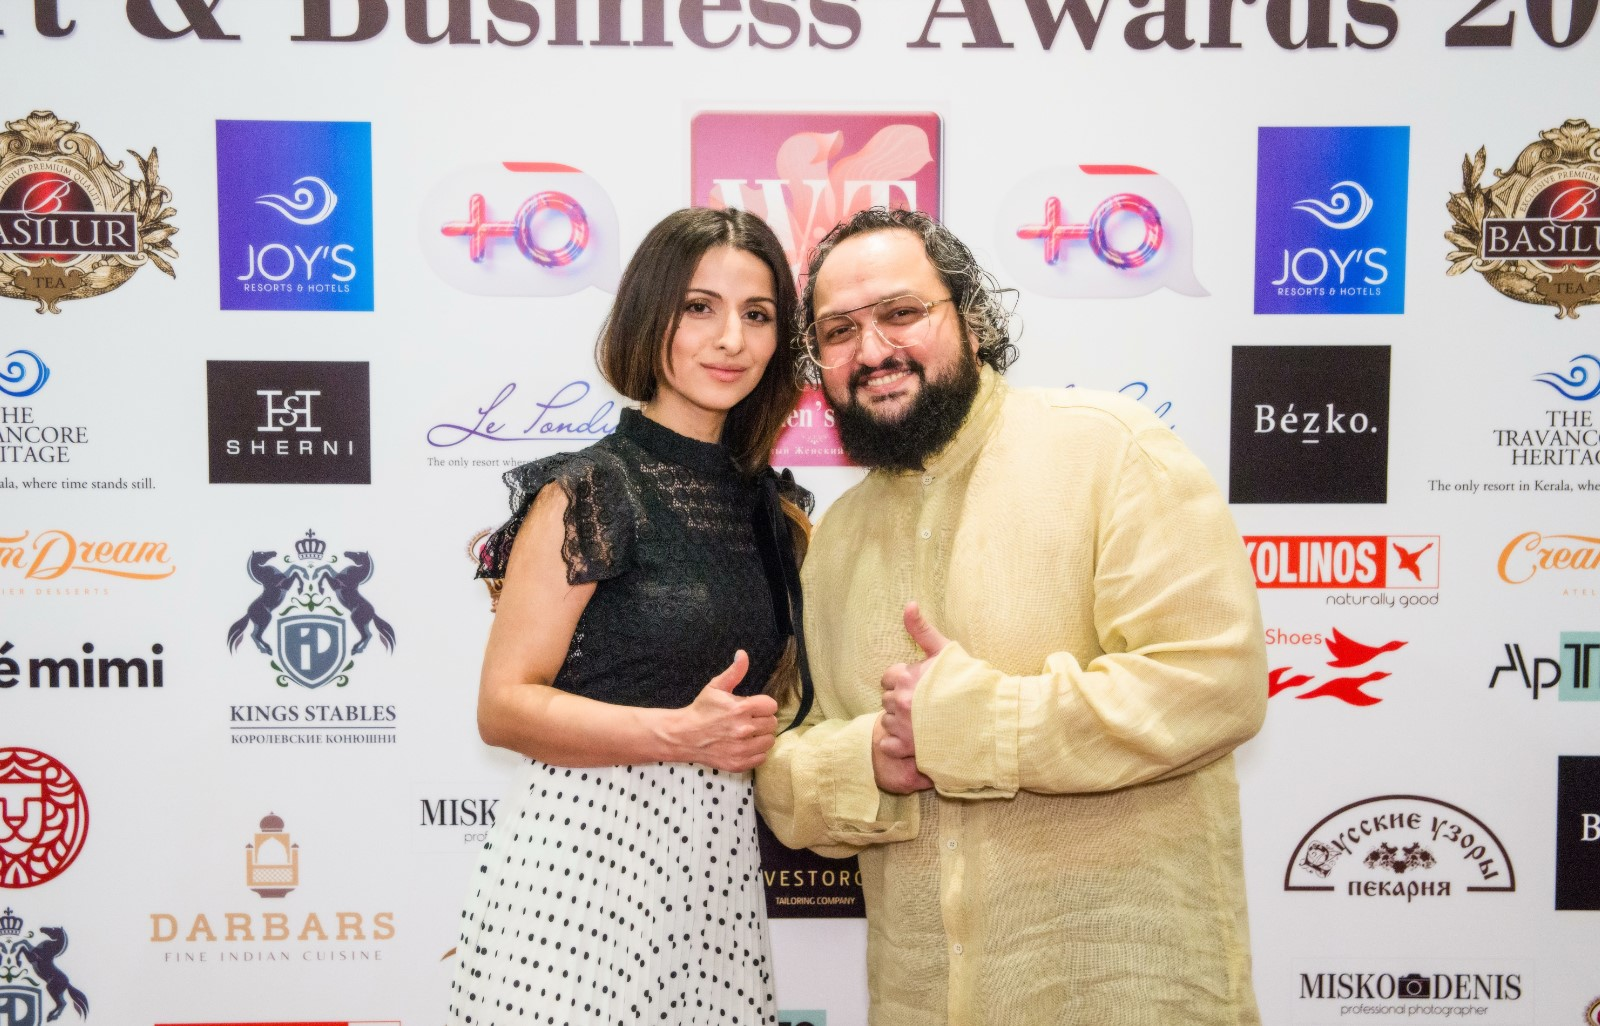 art-business-awards-2019-womens-time-7